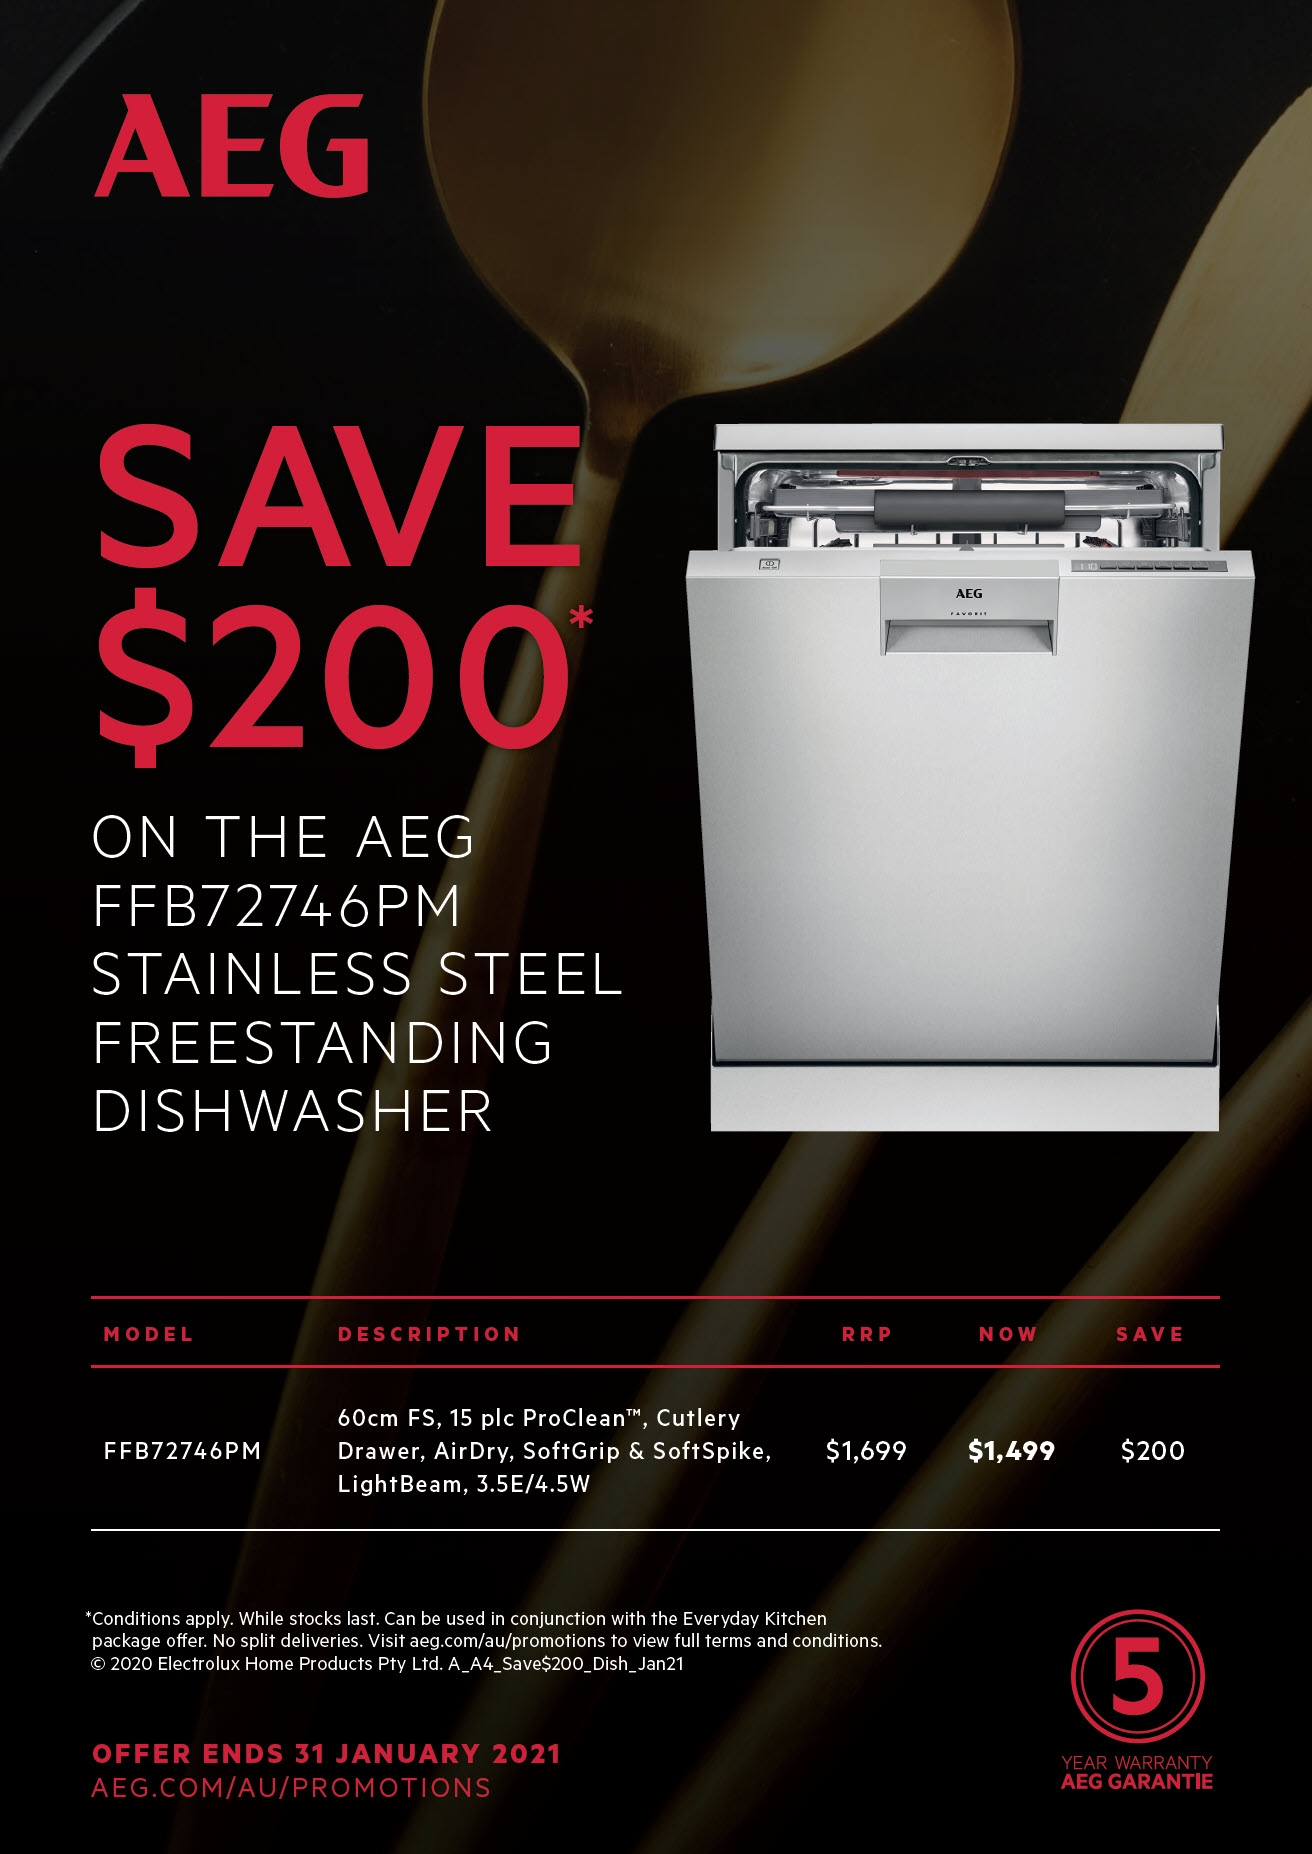 AEG Save $200 FFB72746PM Dishwasher Jan 2021